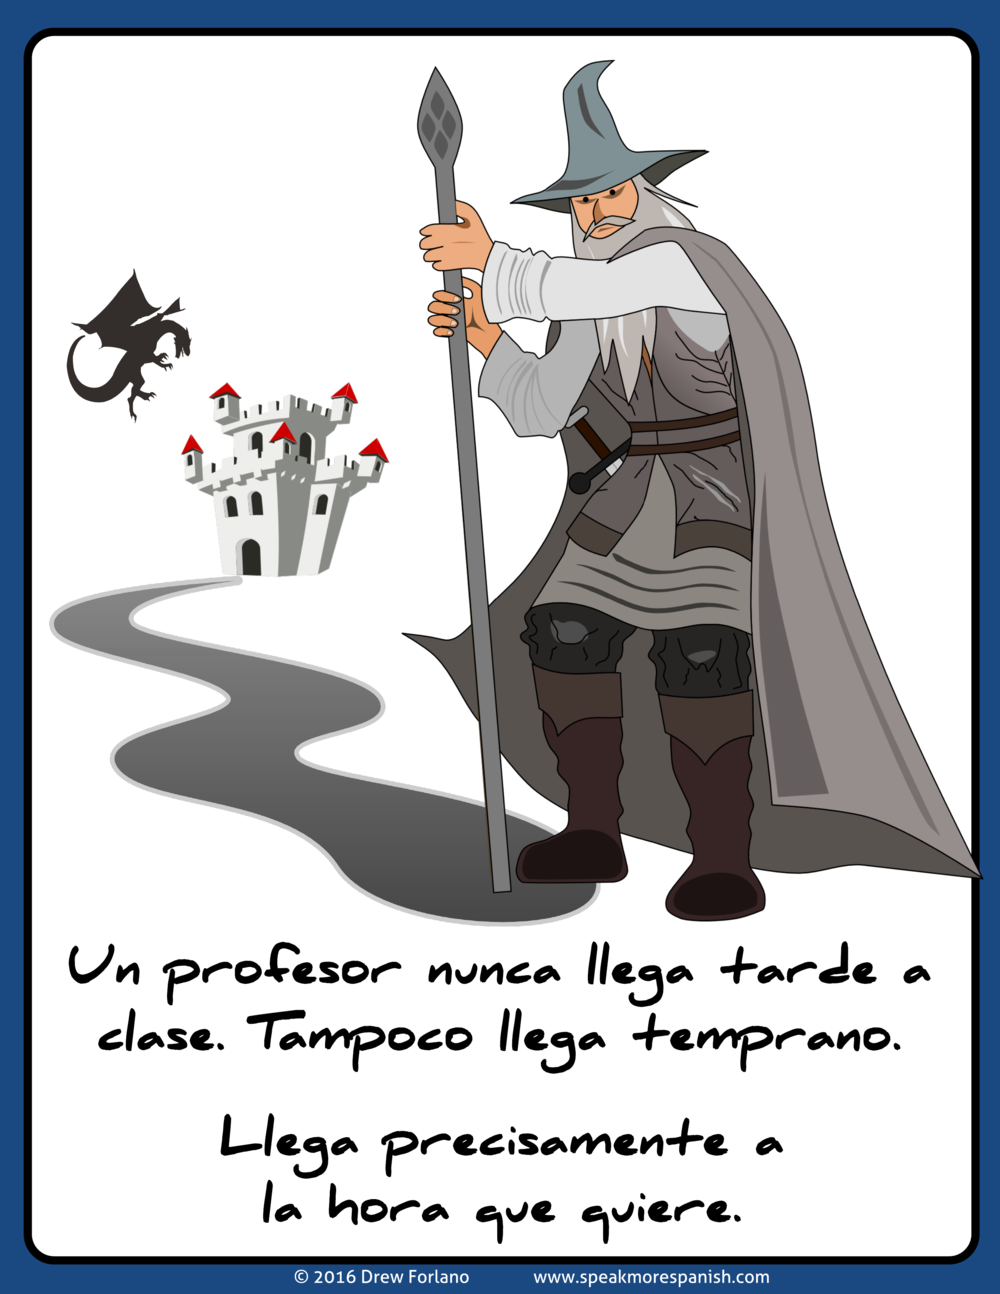 poster nunca llega tarde - Untitled Page (1).png